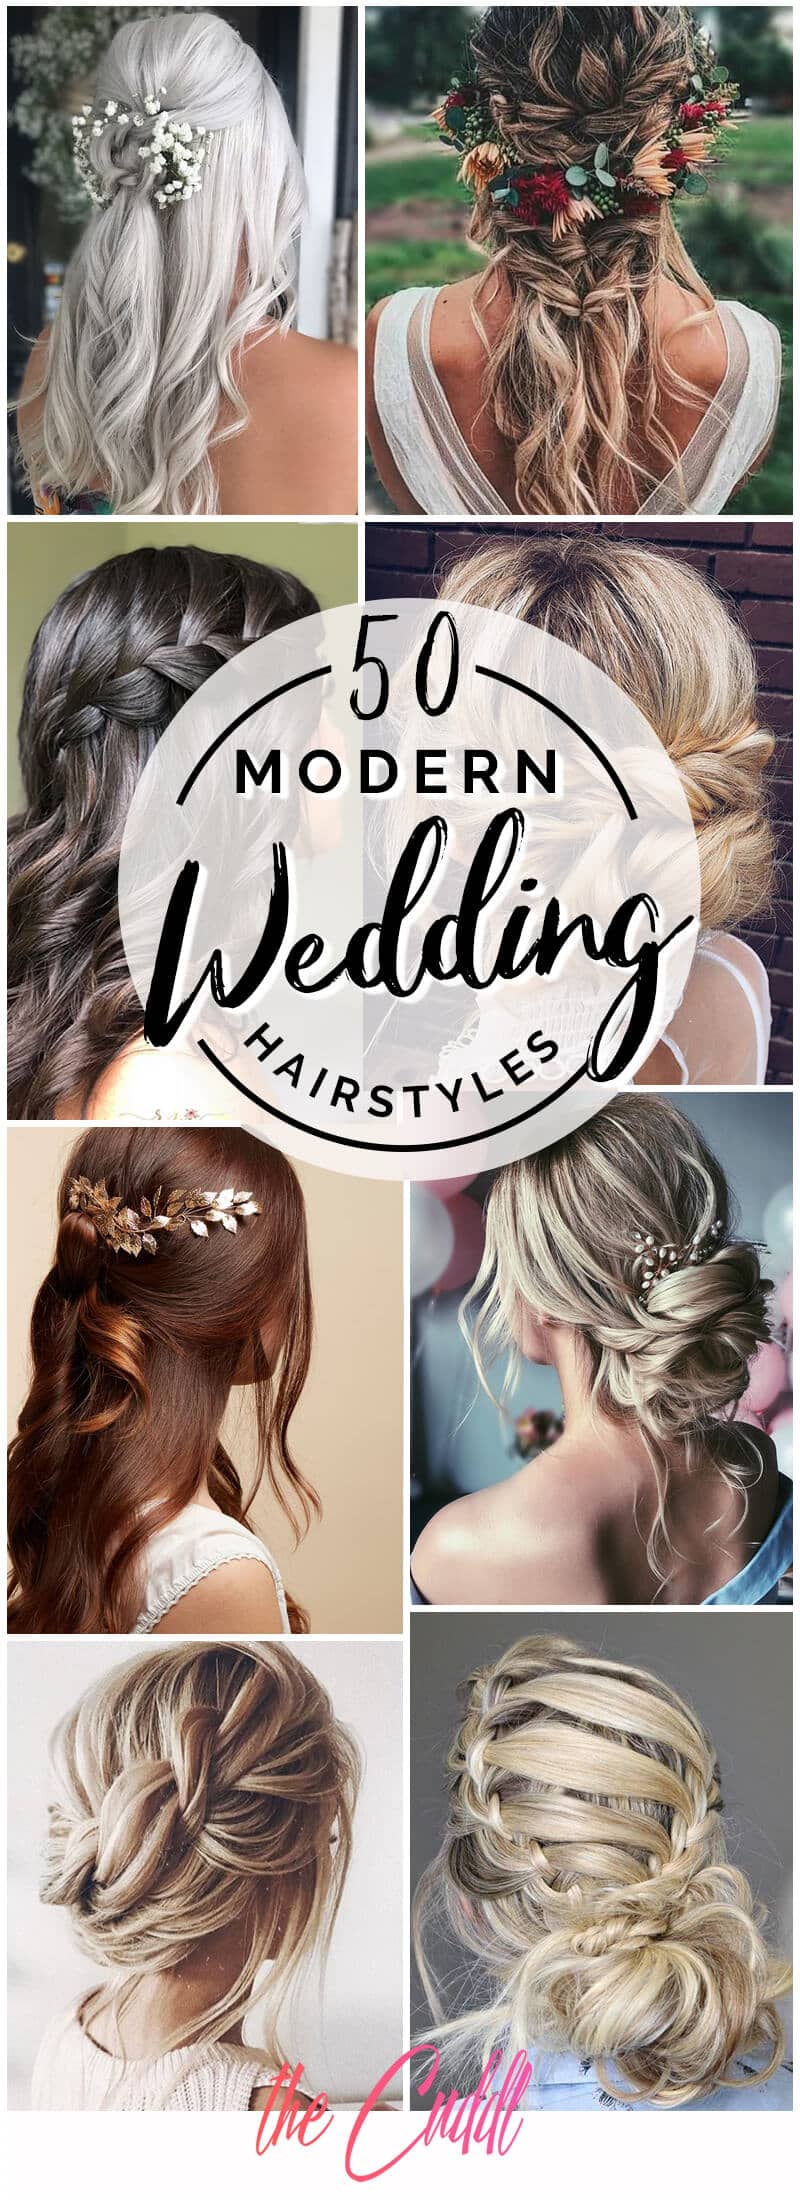 50 Modern Wedding Hairstyle Ideas with Awesome Braids, Curls, and Up-dos